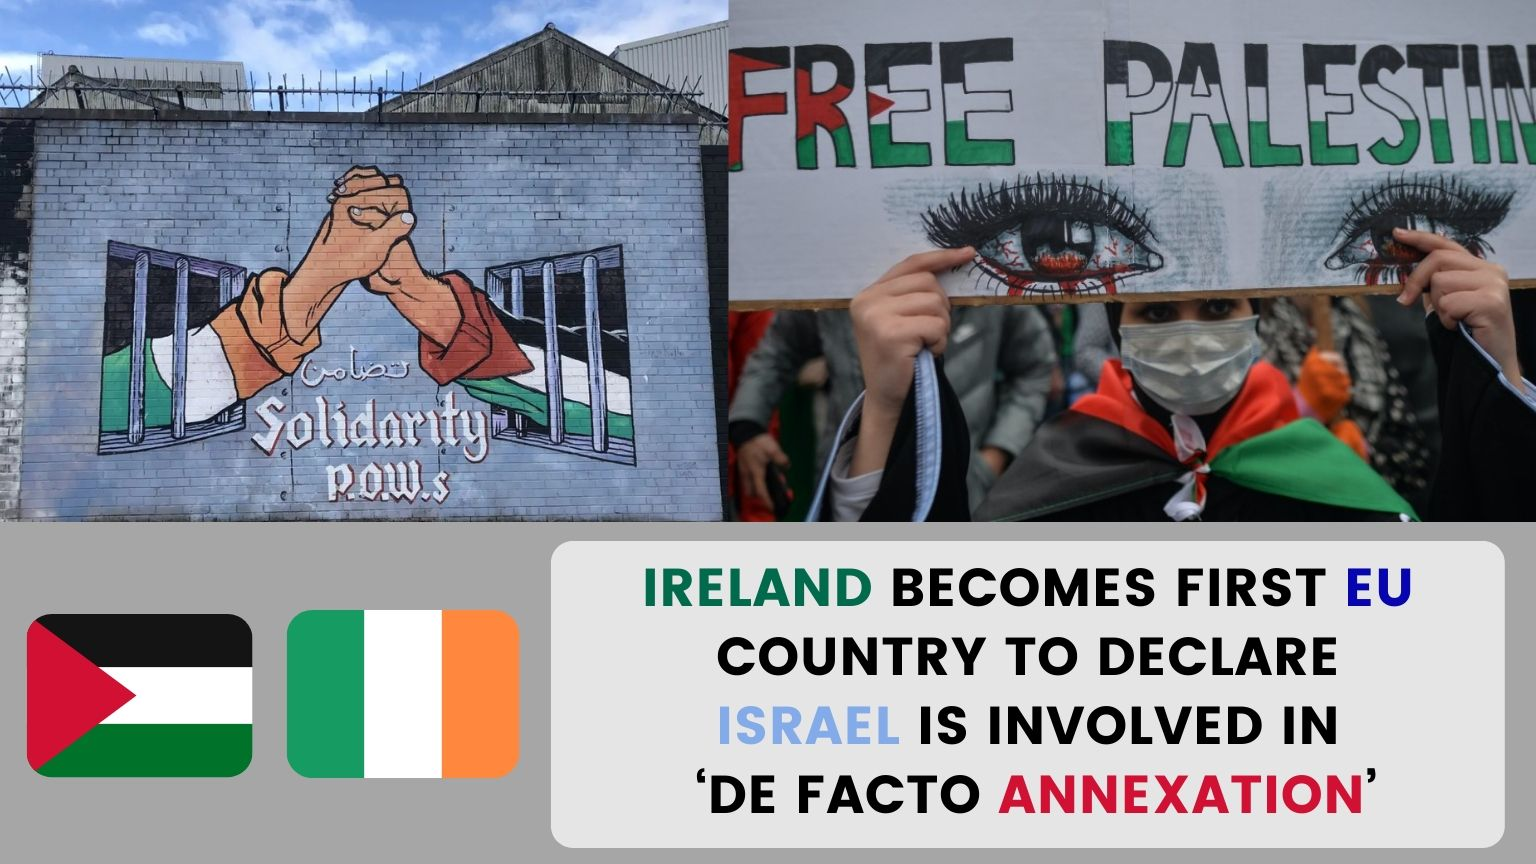 🇮🇪 Ireland becomes first 🇪🇺 EU country to declare Israel is involved in 'de facto annexation'